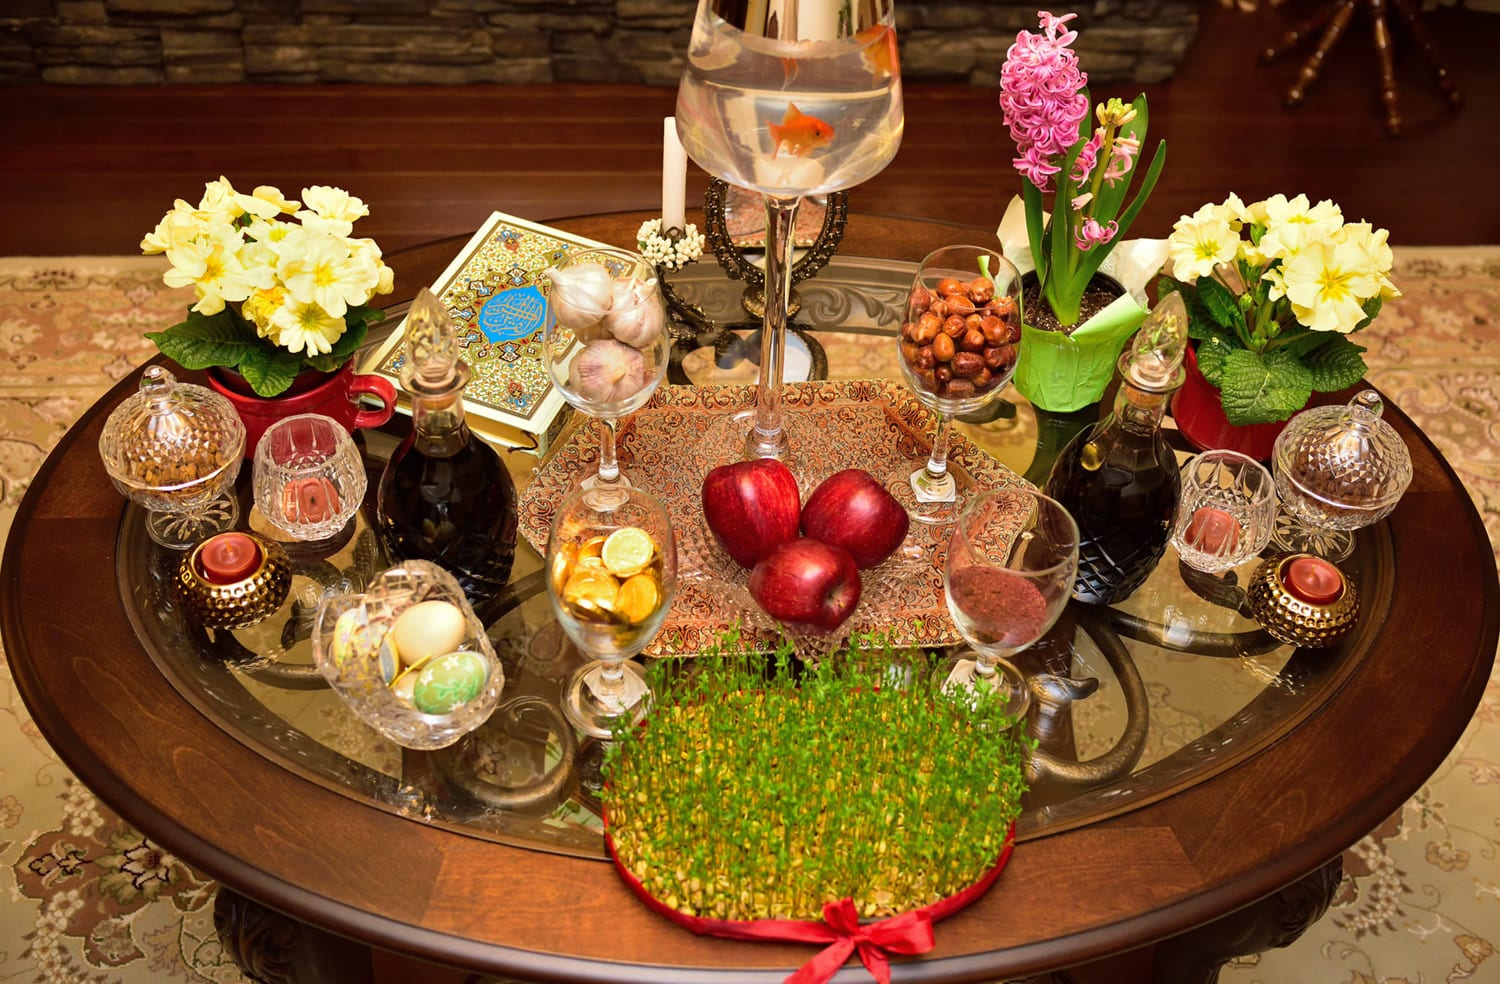 The traditional New Year's spread (sofre-ye haft sin) features seven items that begin with the letter S: sabzeh (sprouts), samanu (pudding), sib (apple), serkeh (vinegar), sir (garlic), senjed (dried oleaster), and somaq (a fruity spice). The spread also typically includes other items such as a copy of the Qur'an, a mirror, and live goldfish. The Iranian New Year, Noruz, is the most important festival of the year and is celebrated by peoples from the Balkans to Central Asia and India.